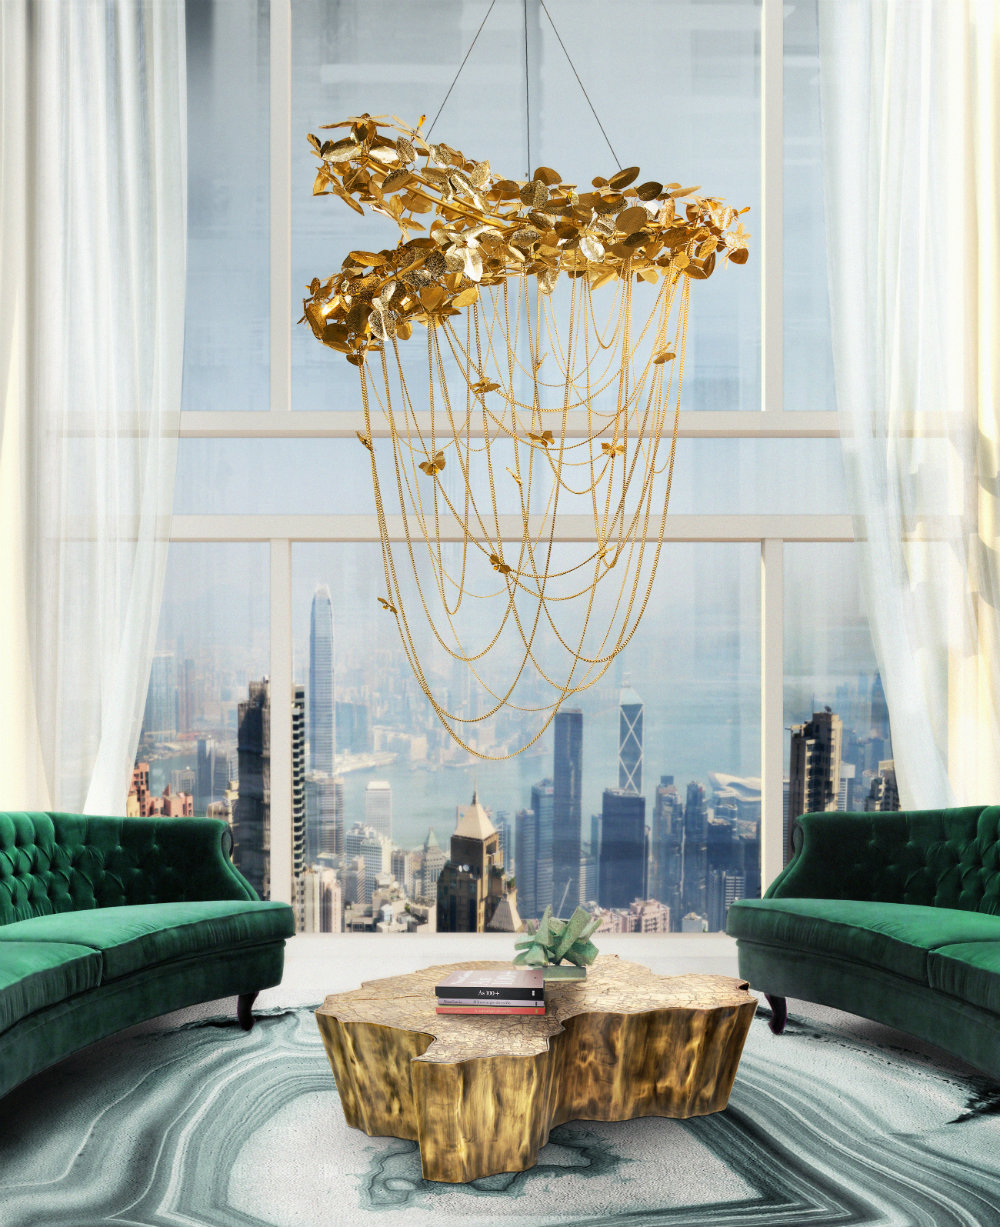 How to Improve Your Home Using Golden Light Fixtures 04 Golden Light Fixtures How to Improve Your Home Using Golden Light Fixtures How to Improve Your Home Using Golden Light Fixtures 04